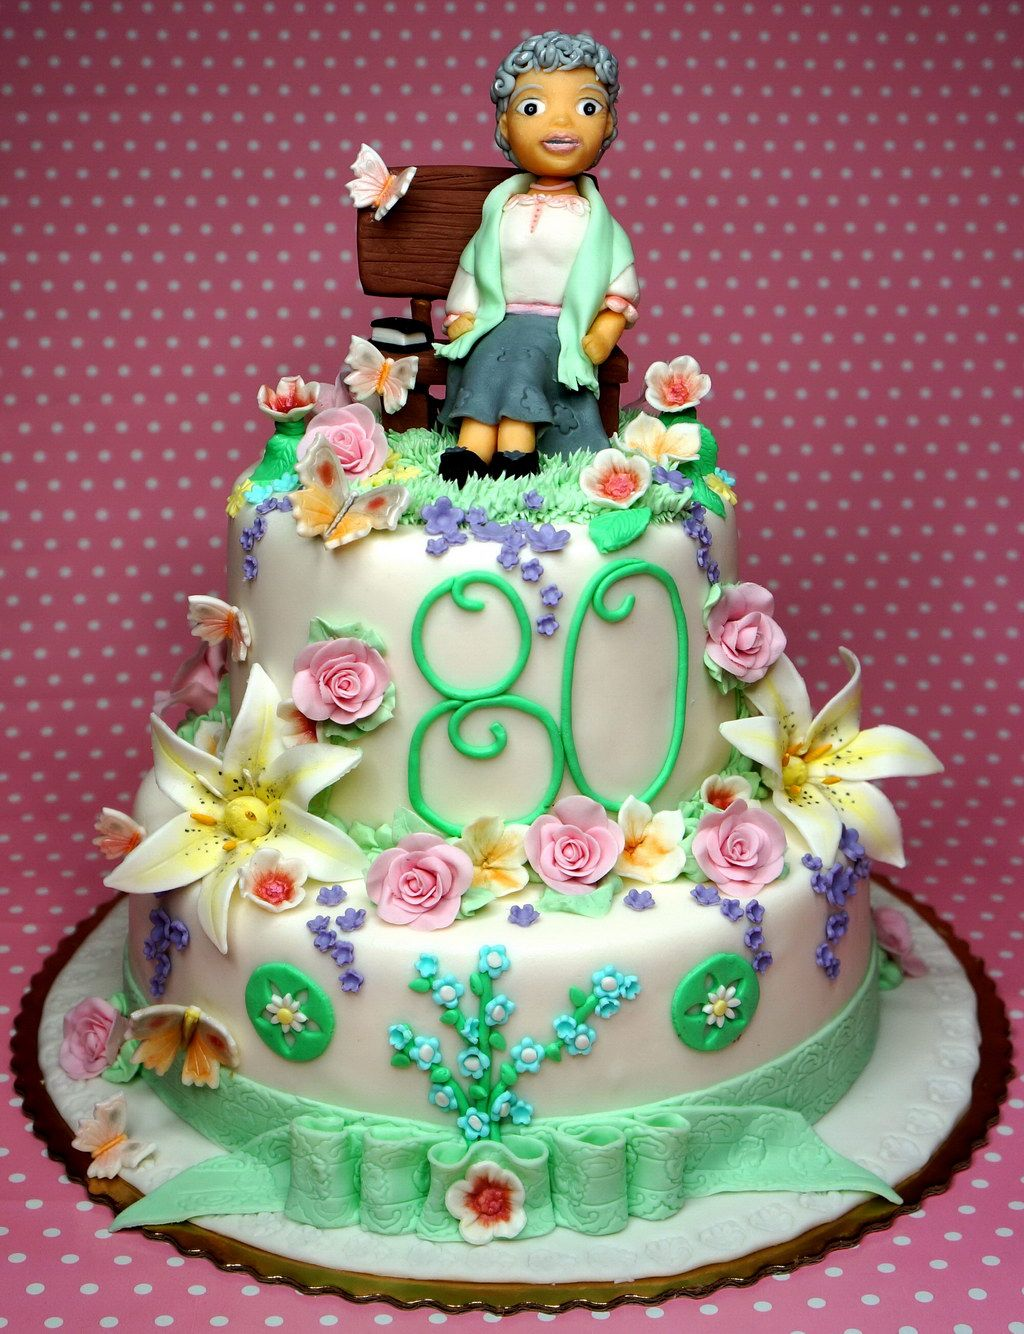 Birthday Cake Images For Grandfather : 80th Birthday Cake for Grandmother http://www.pinkcakeland ...